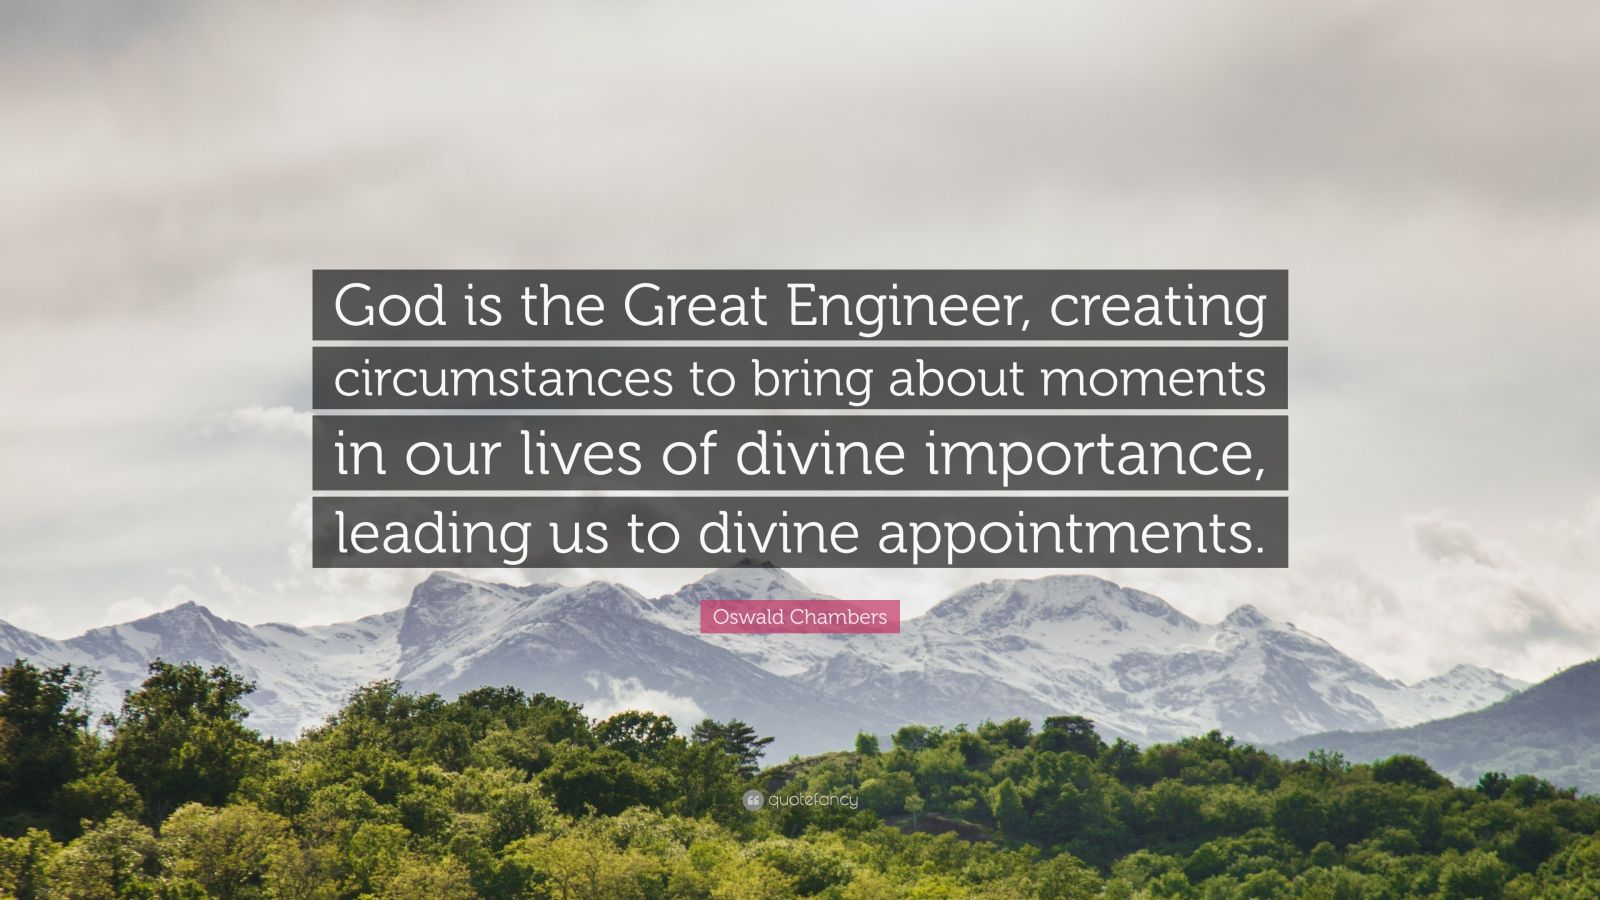 """Oswald Chambers Quote: """"God is the Great Engineer, creating circumstances to bring about moments in our lives of divine importance, leading us to divine appointments."""""""